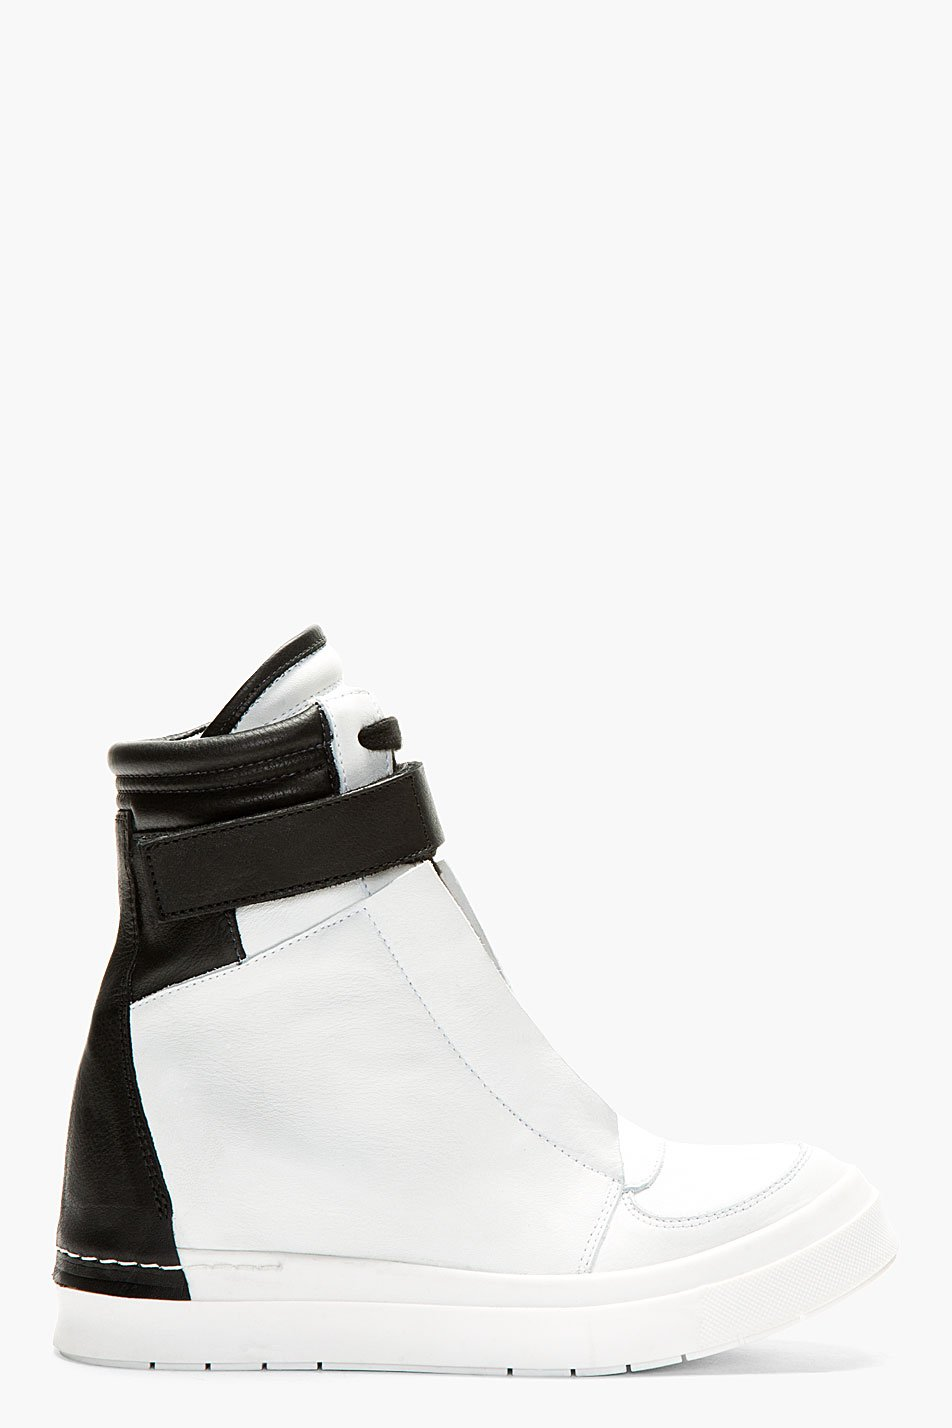 Ca by cinzia araia white and black hidden wedge new skin velcro sneakers